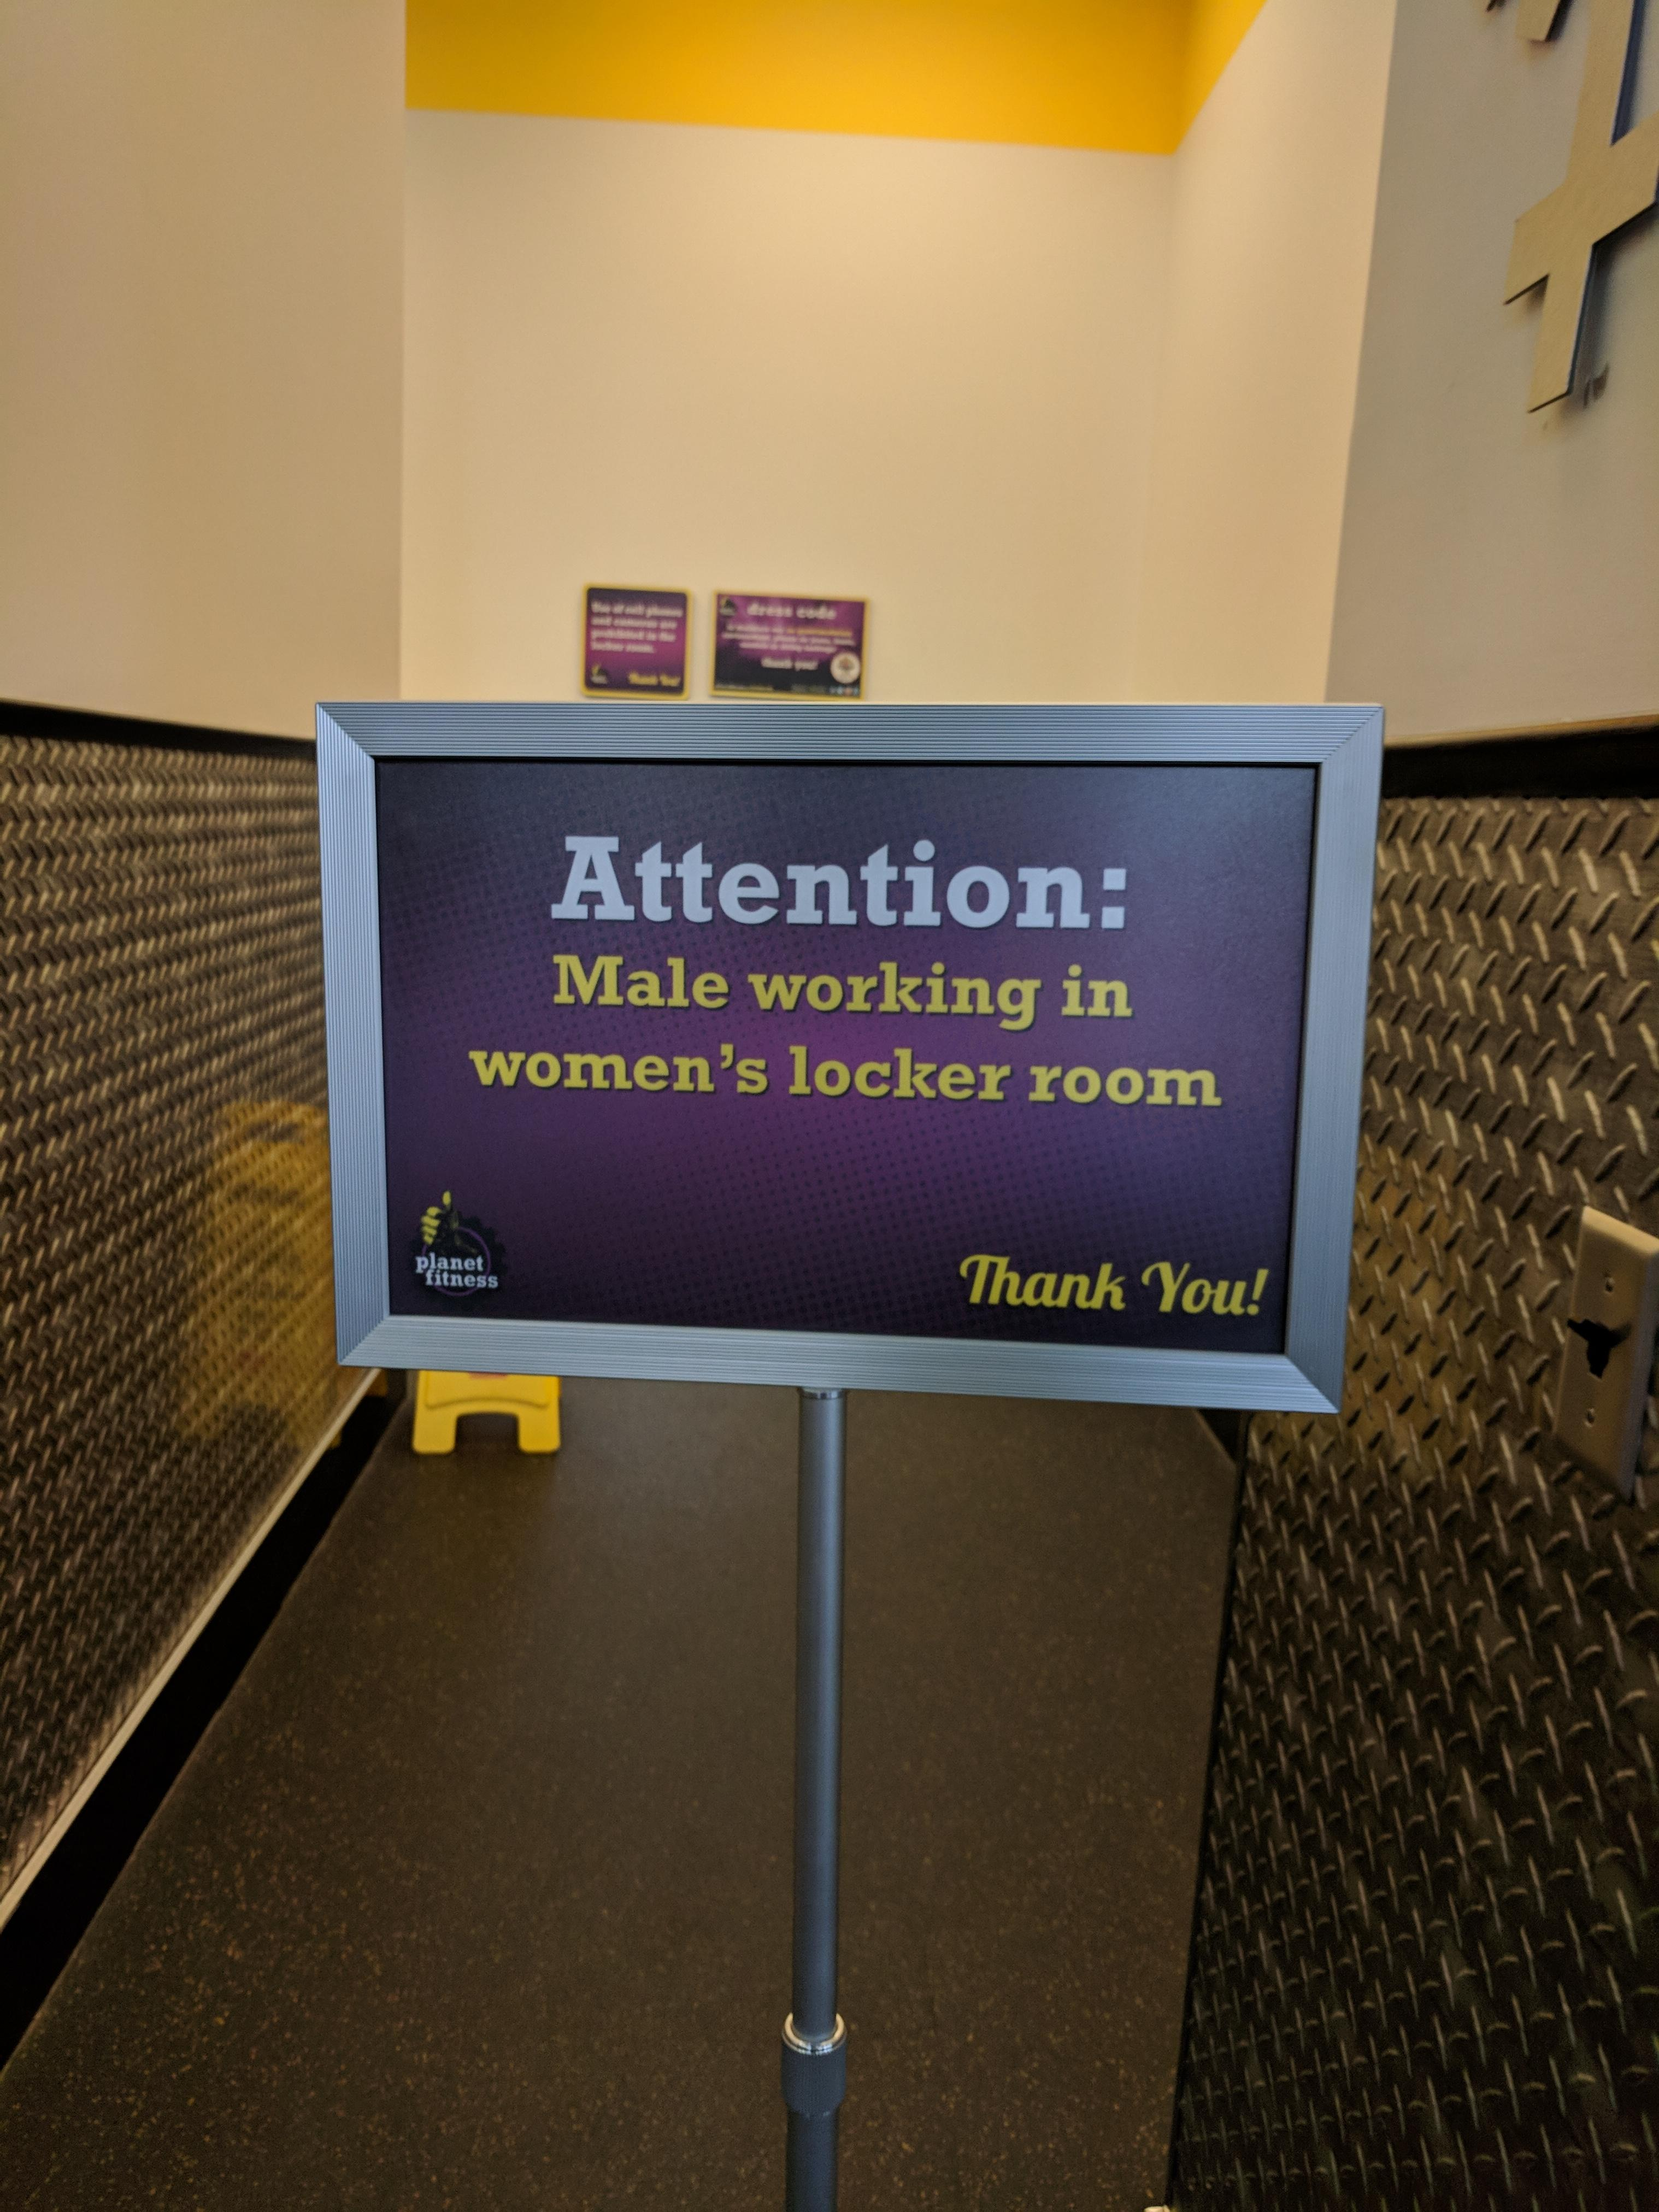 Planet Fitness Nicholasville Rd : planet, fitness, nicholasville, Planet, Fitness, Images, Pholder, Bodybuilding,, Mildlyinfuriating